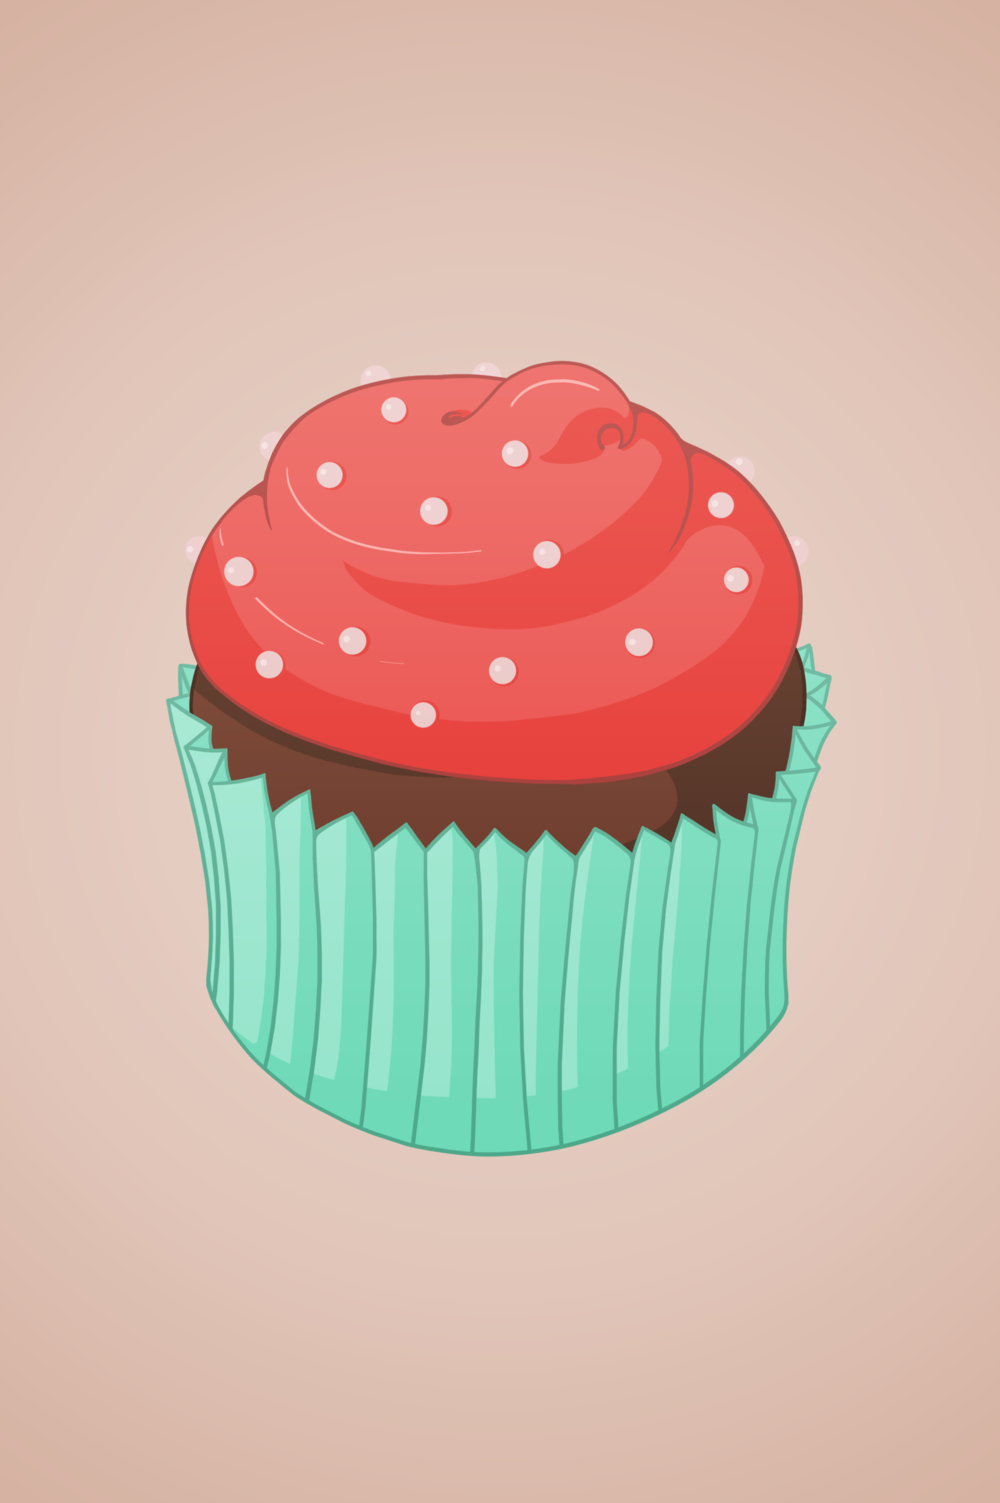 cupcake01Colour.png